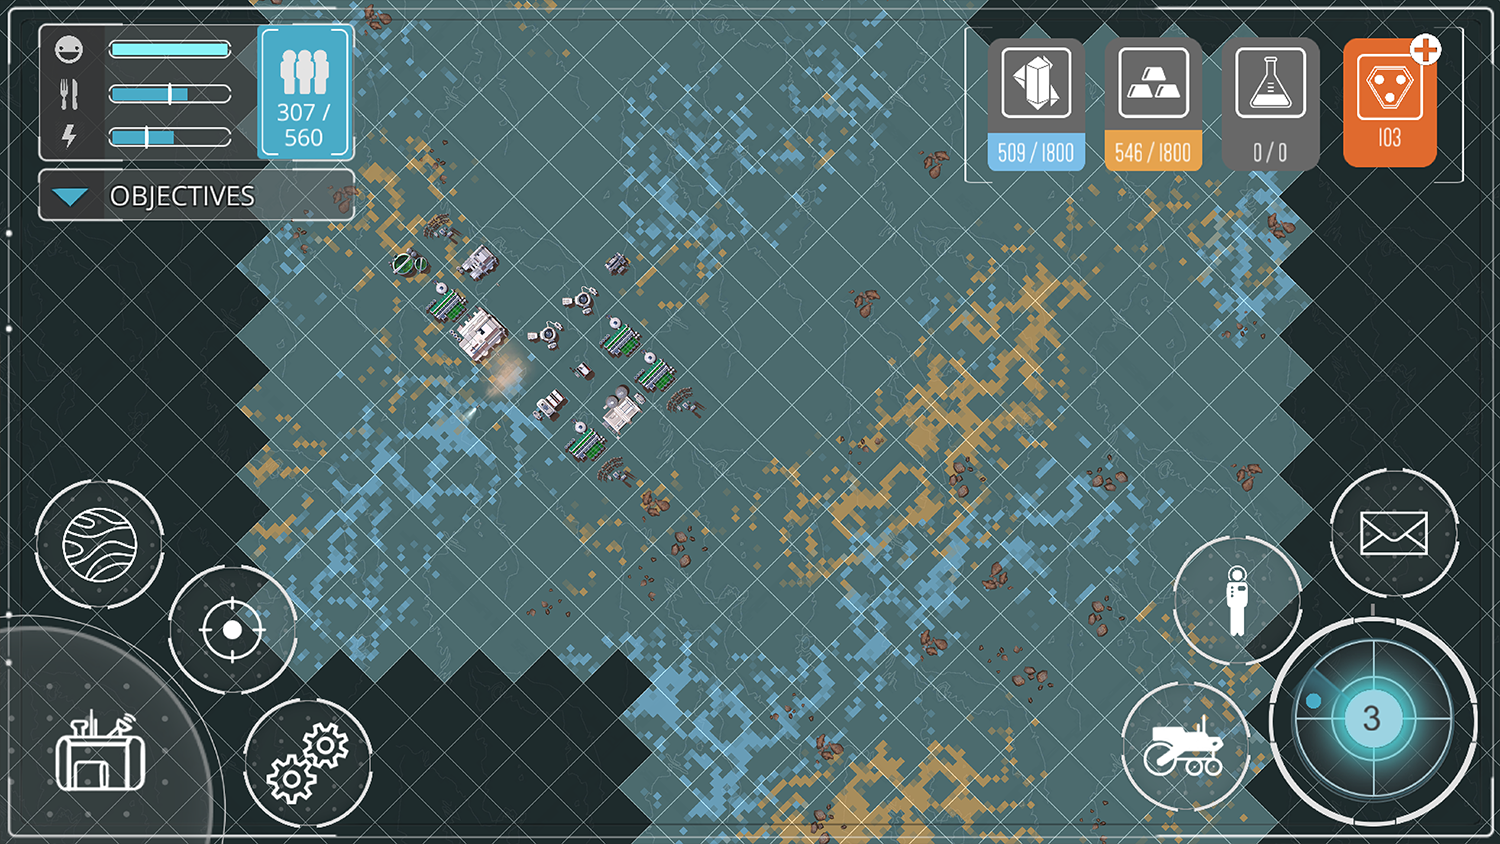 Screenshot of satellite view in the game which allows users to expand the reach of their colony.